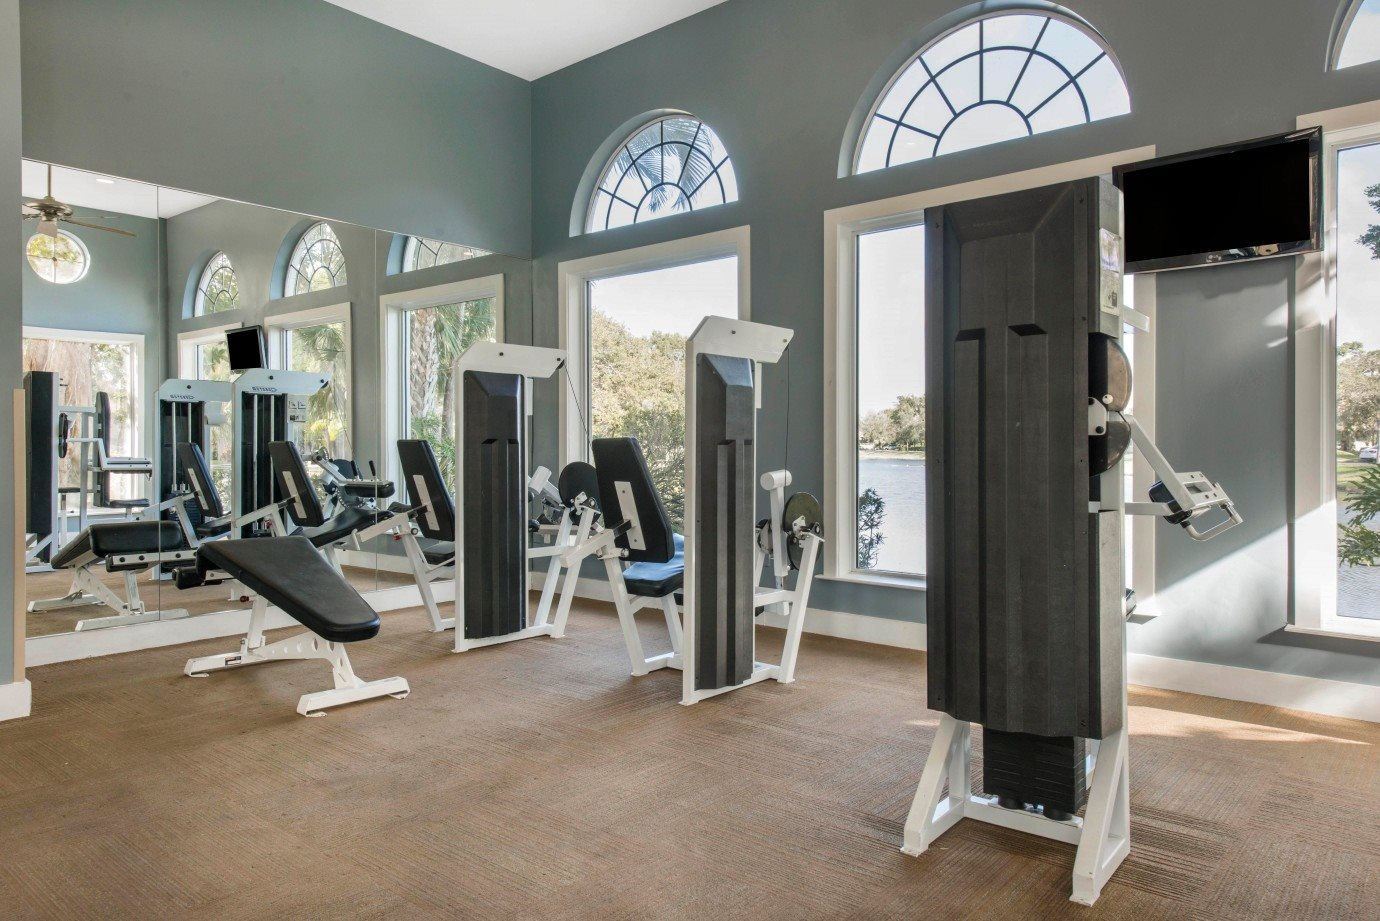 The Preserve at Deer Creek |Fitness Center